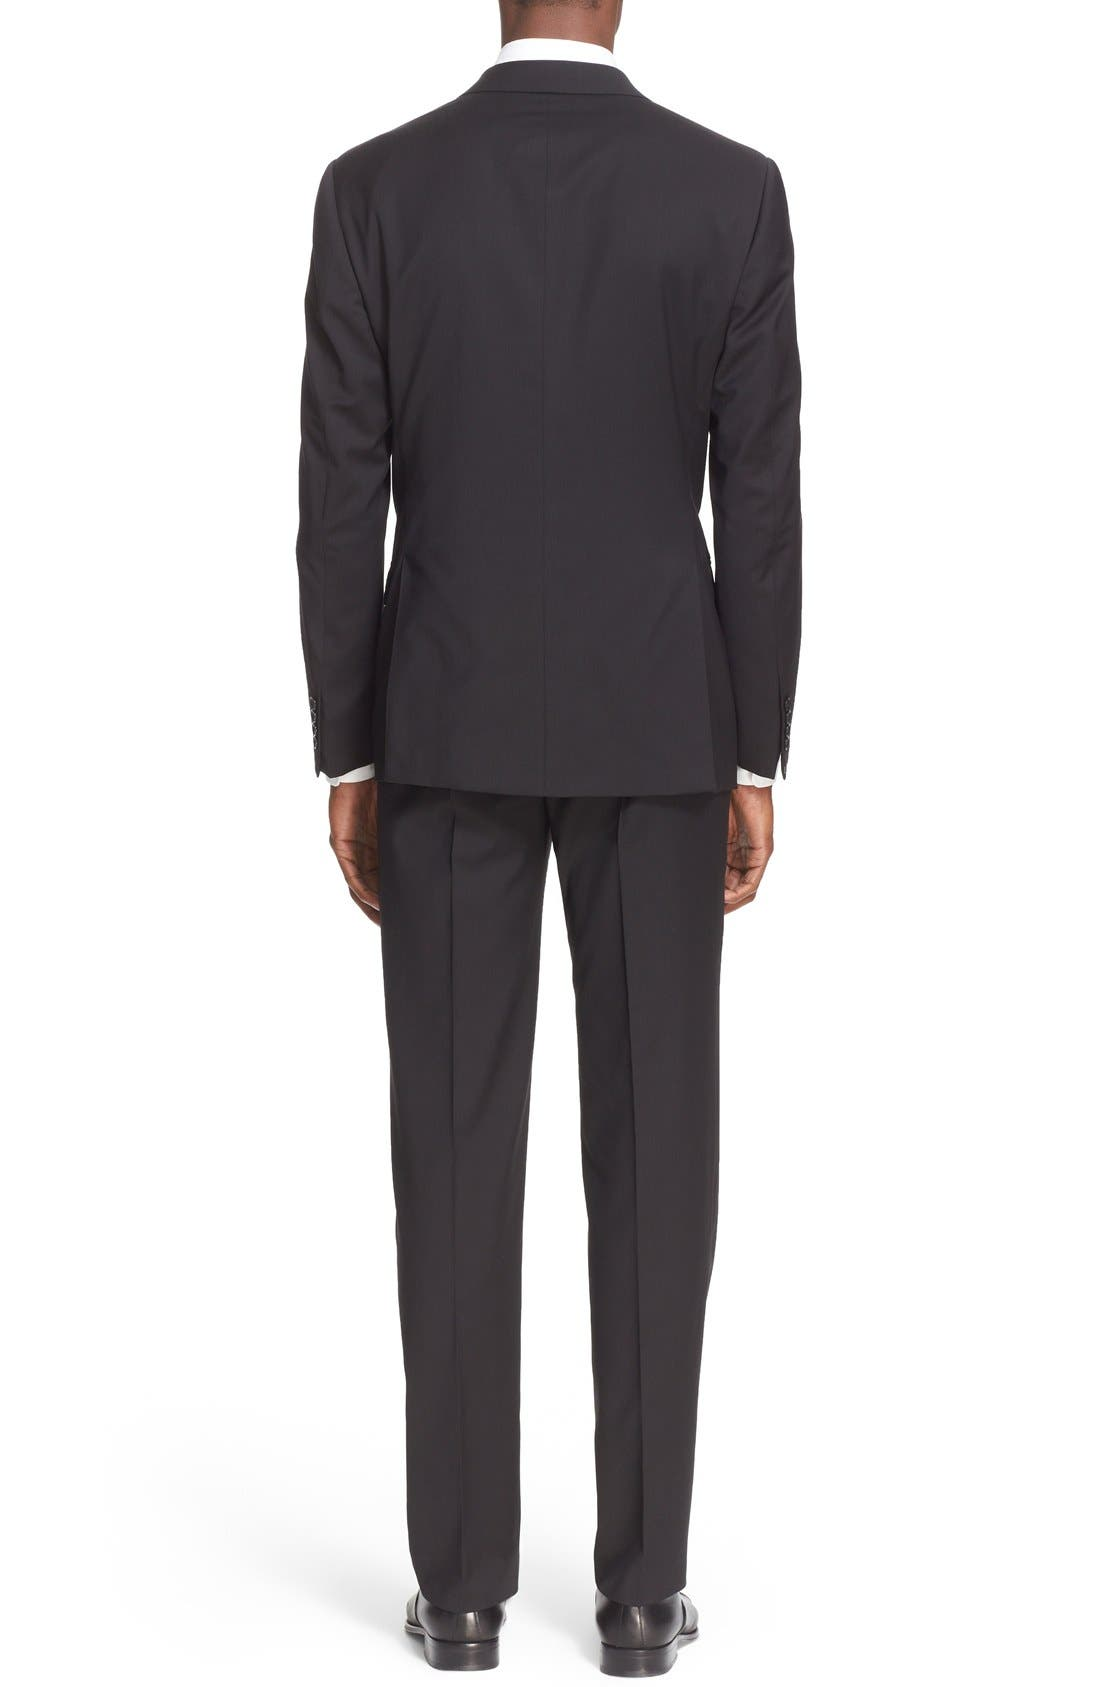 G-Line Trim Fit Solid Wool Suit,                             Alternate thumbnail 8, color,                             001